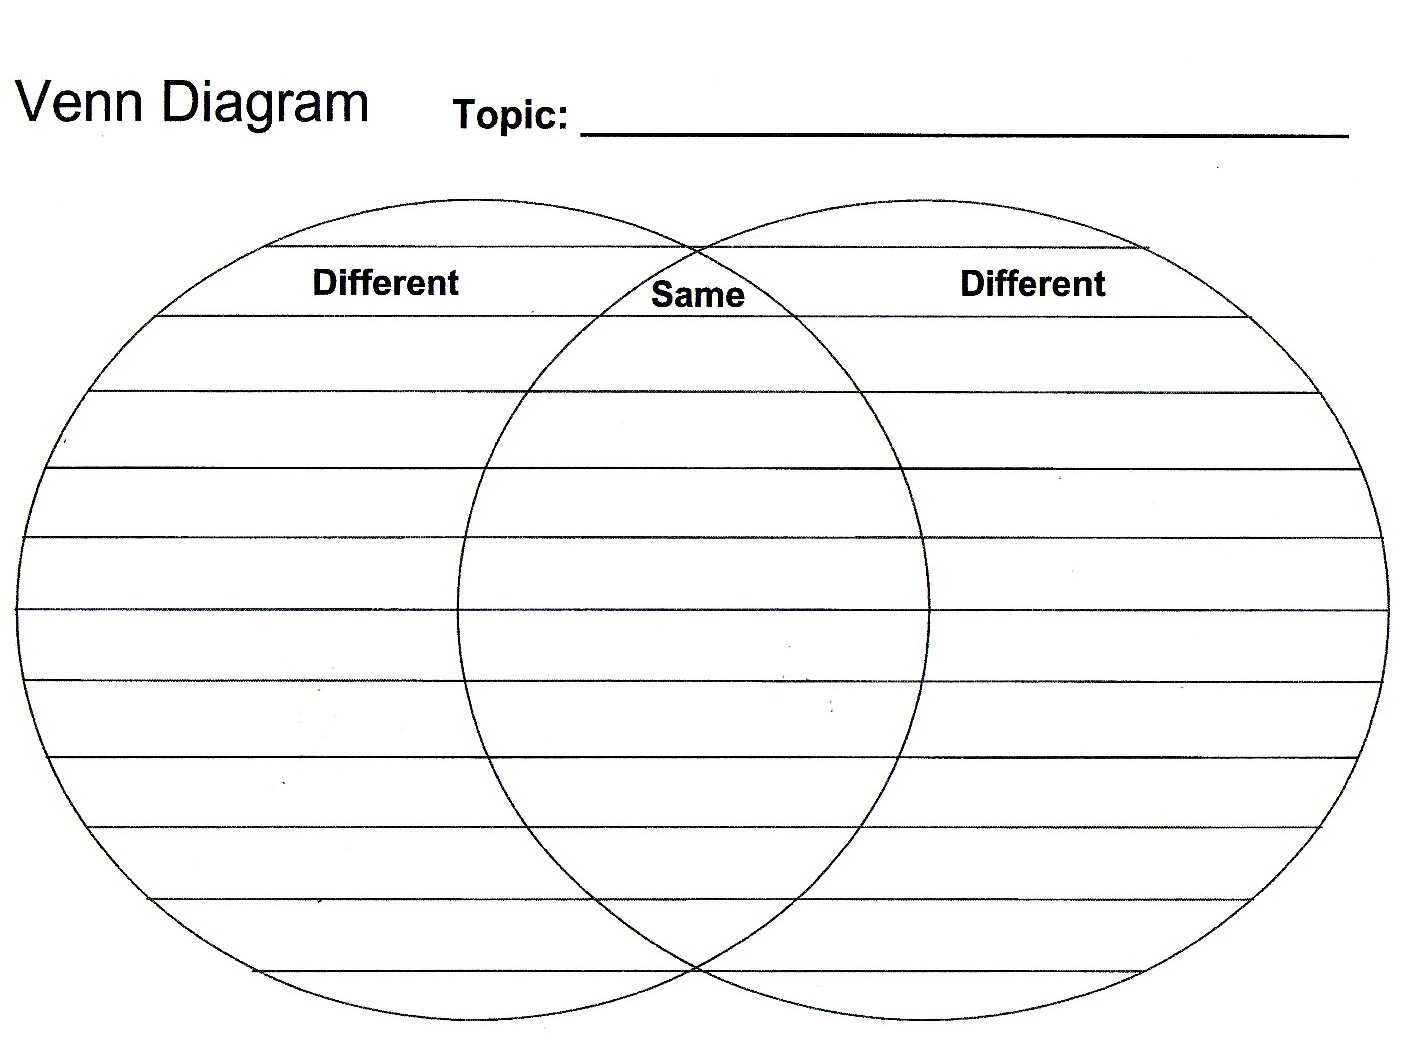 venn diagram challenge organize your opposites adventureclubinteractive